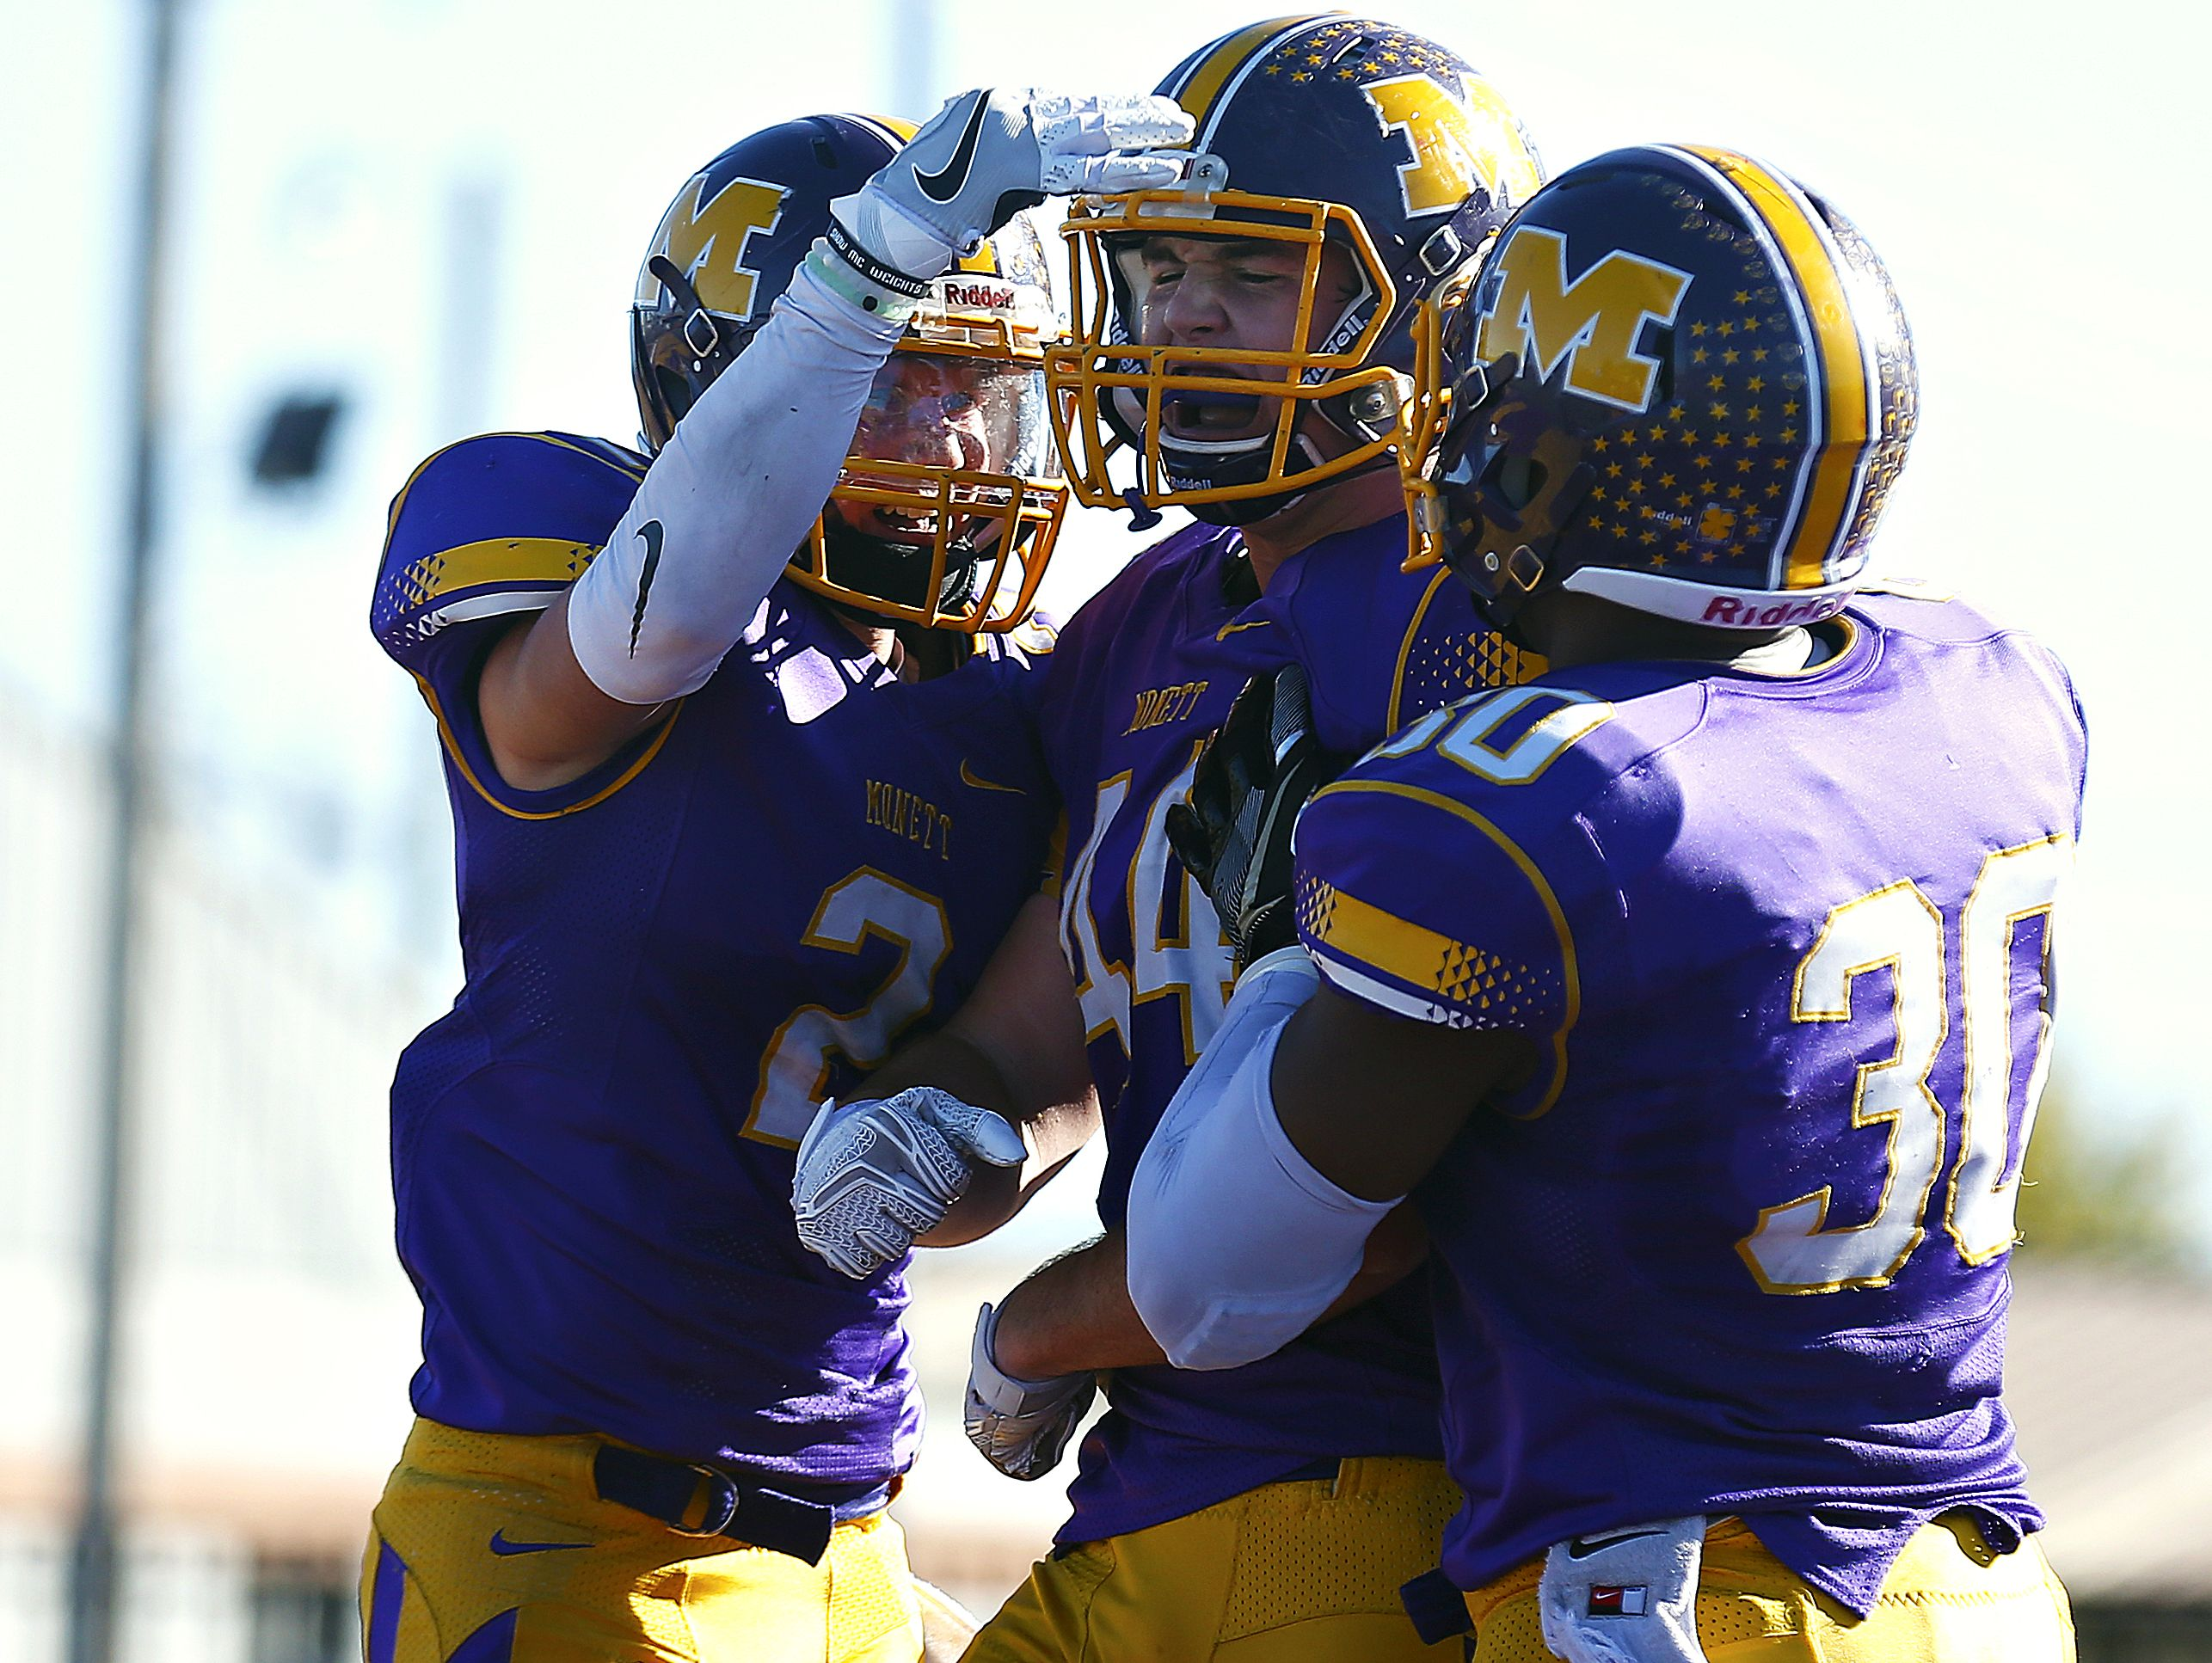 Monett High School tight end Alex Turner (44) celebrates with his teammates after scoring a touchdown during second quarter action of the quarterfinal playoff game between Monett High School and Owensville High School played at Burl Fowler Stadium in Monett, Mo. on Nov. 12, 2016. The Monett Cubs won the game 48-20.